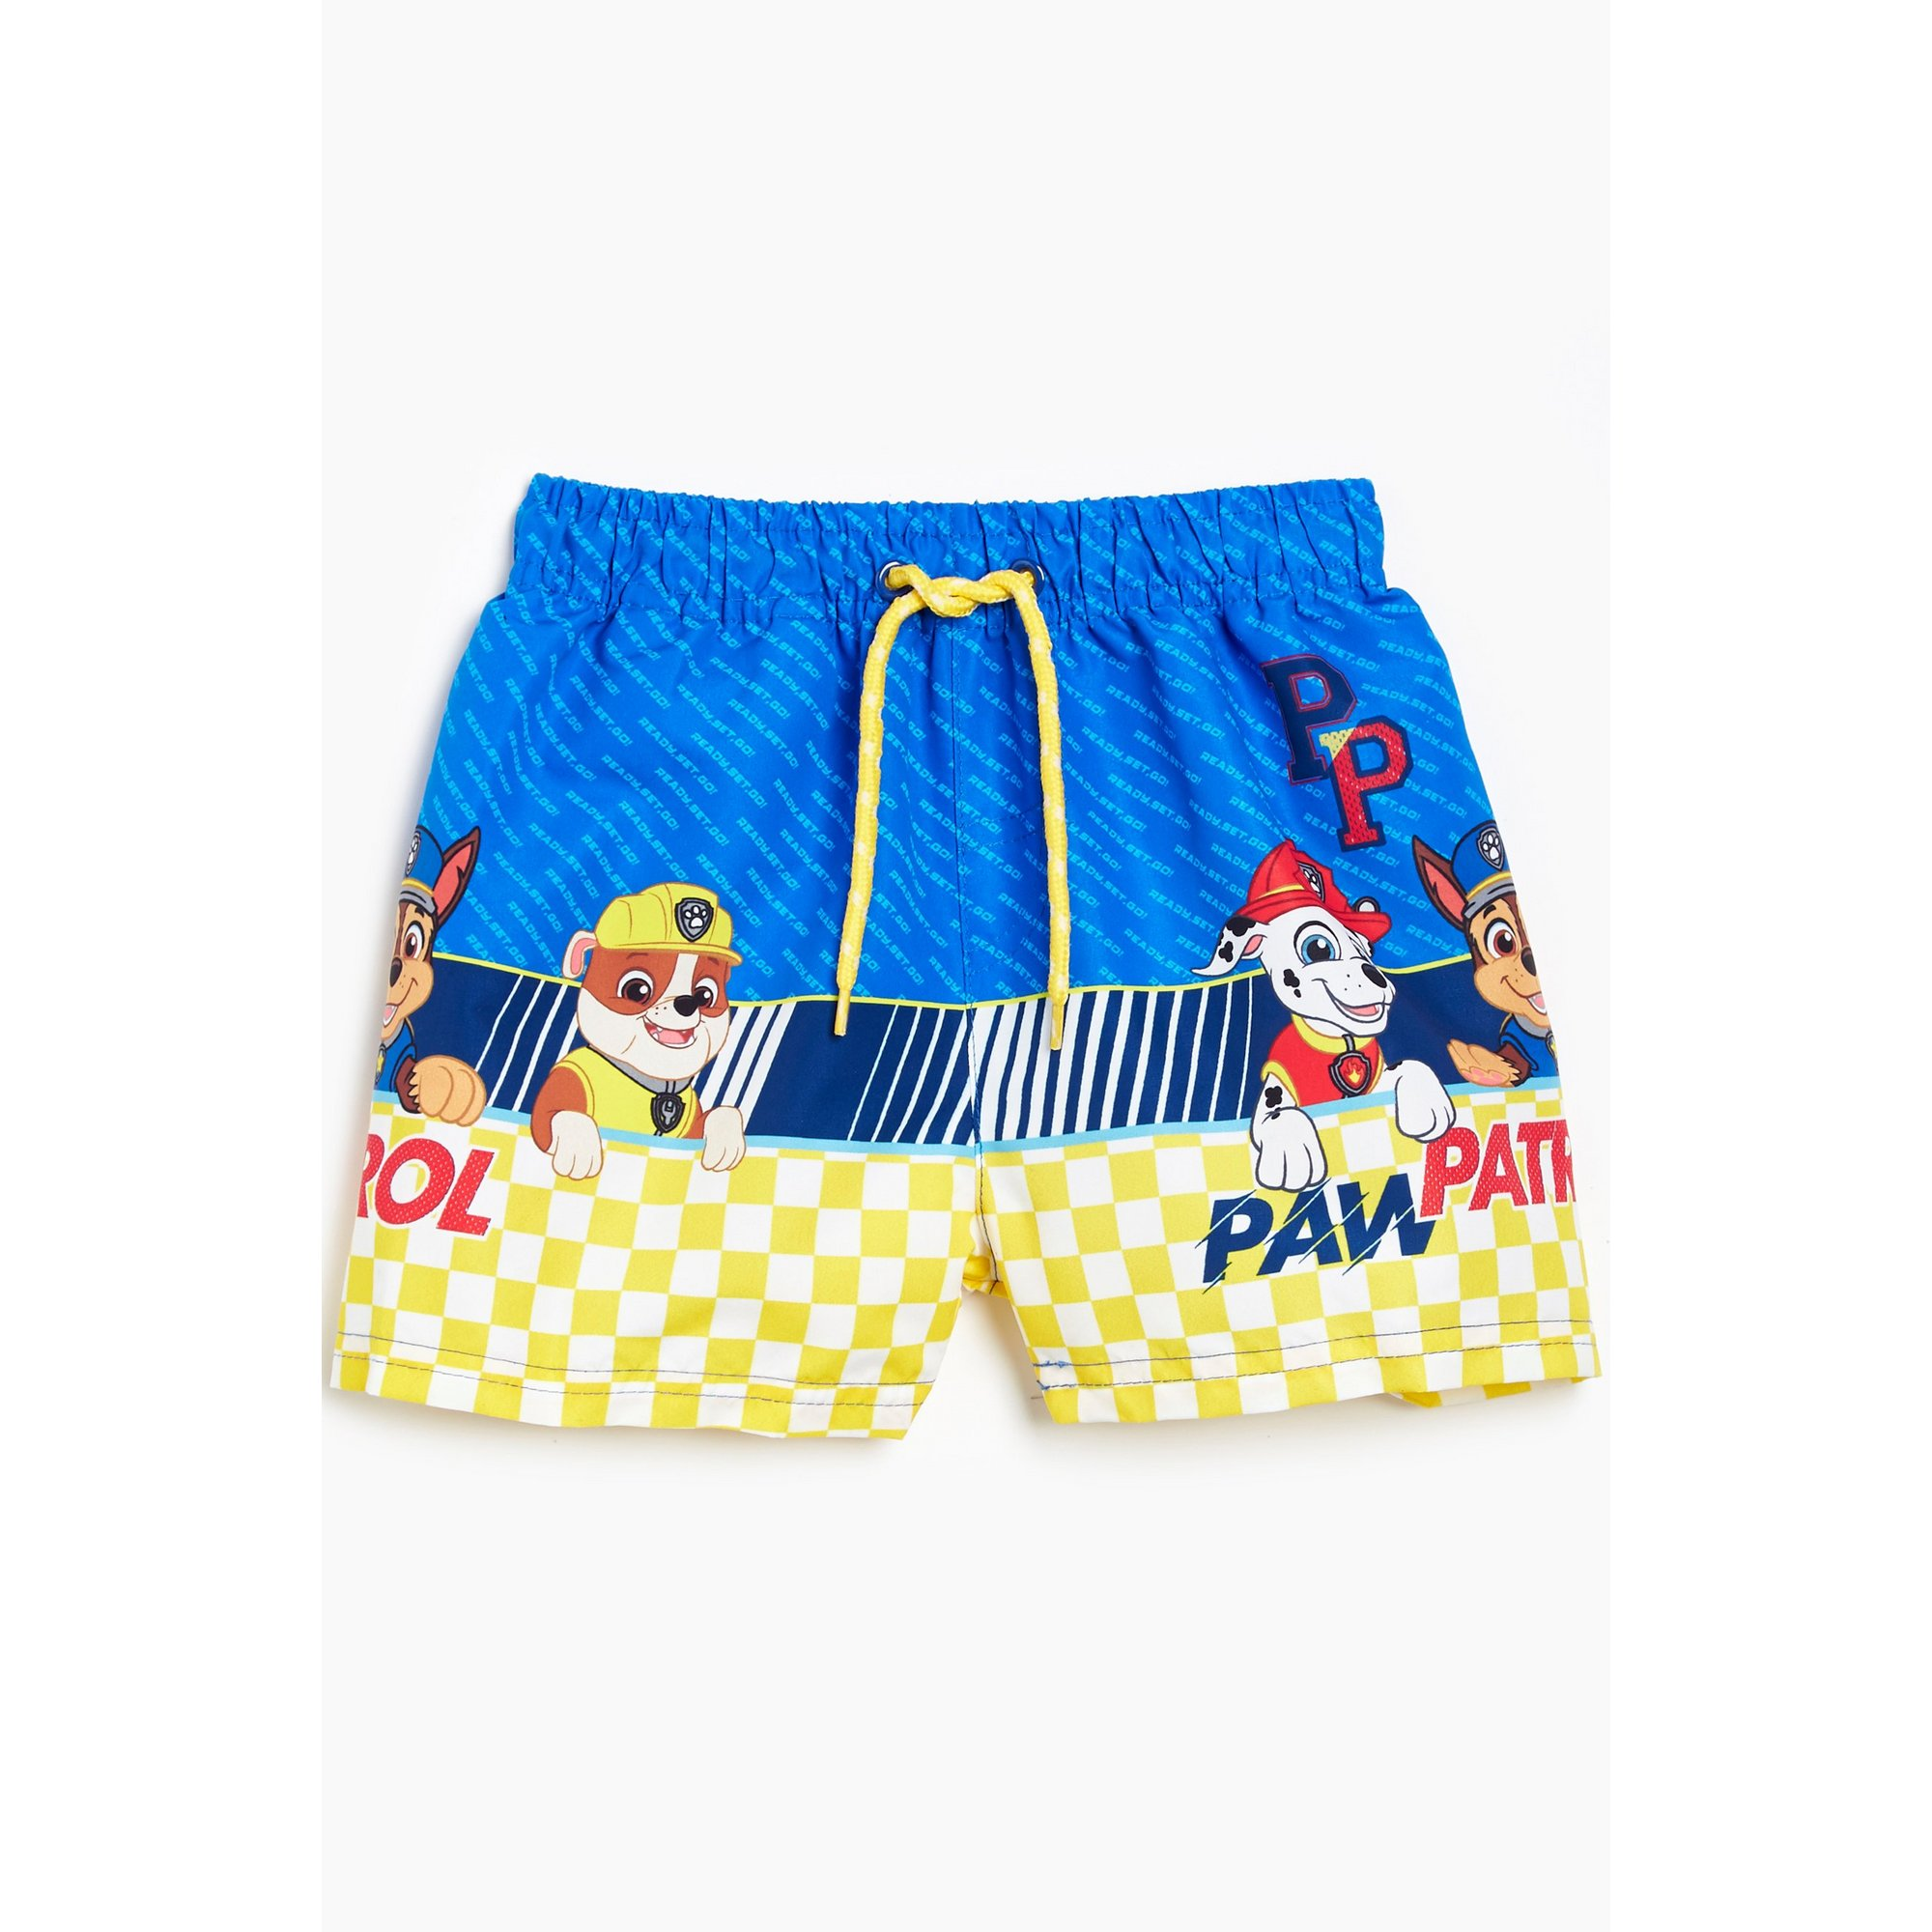 Image of Younger Boys Yellow Chequered Paw Patrol Swim Shorts